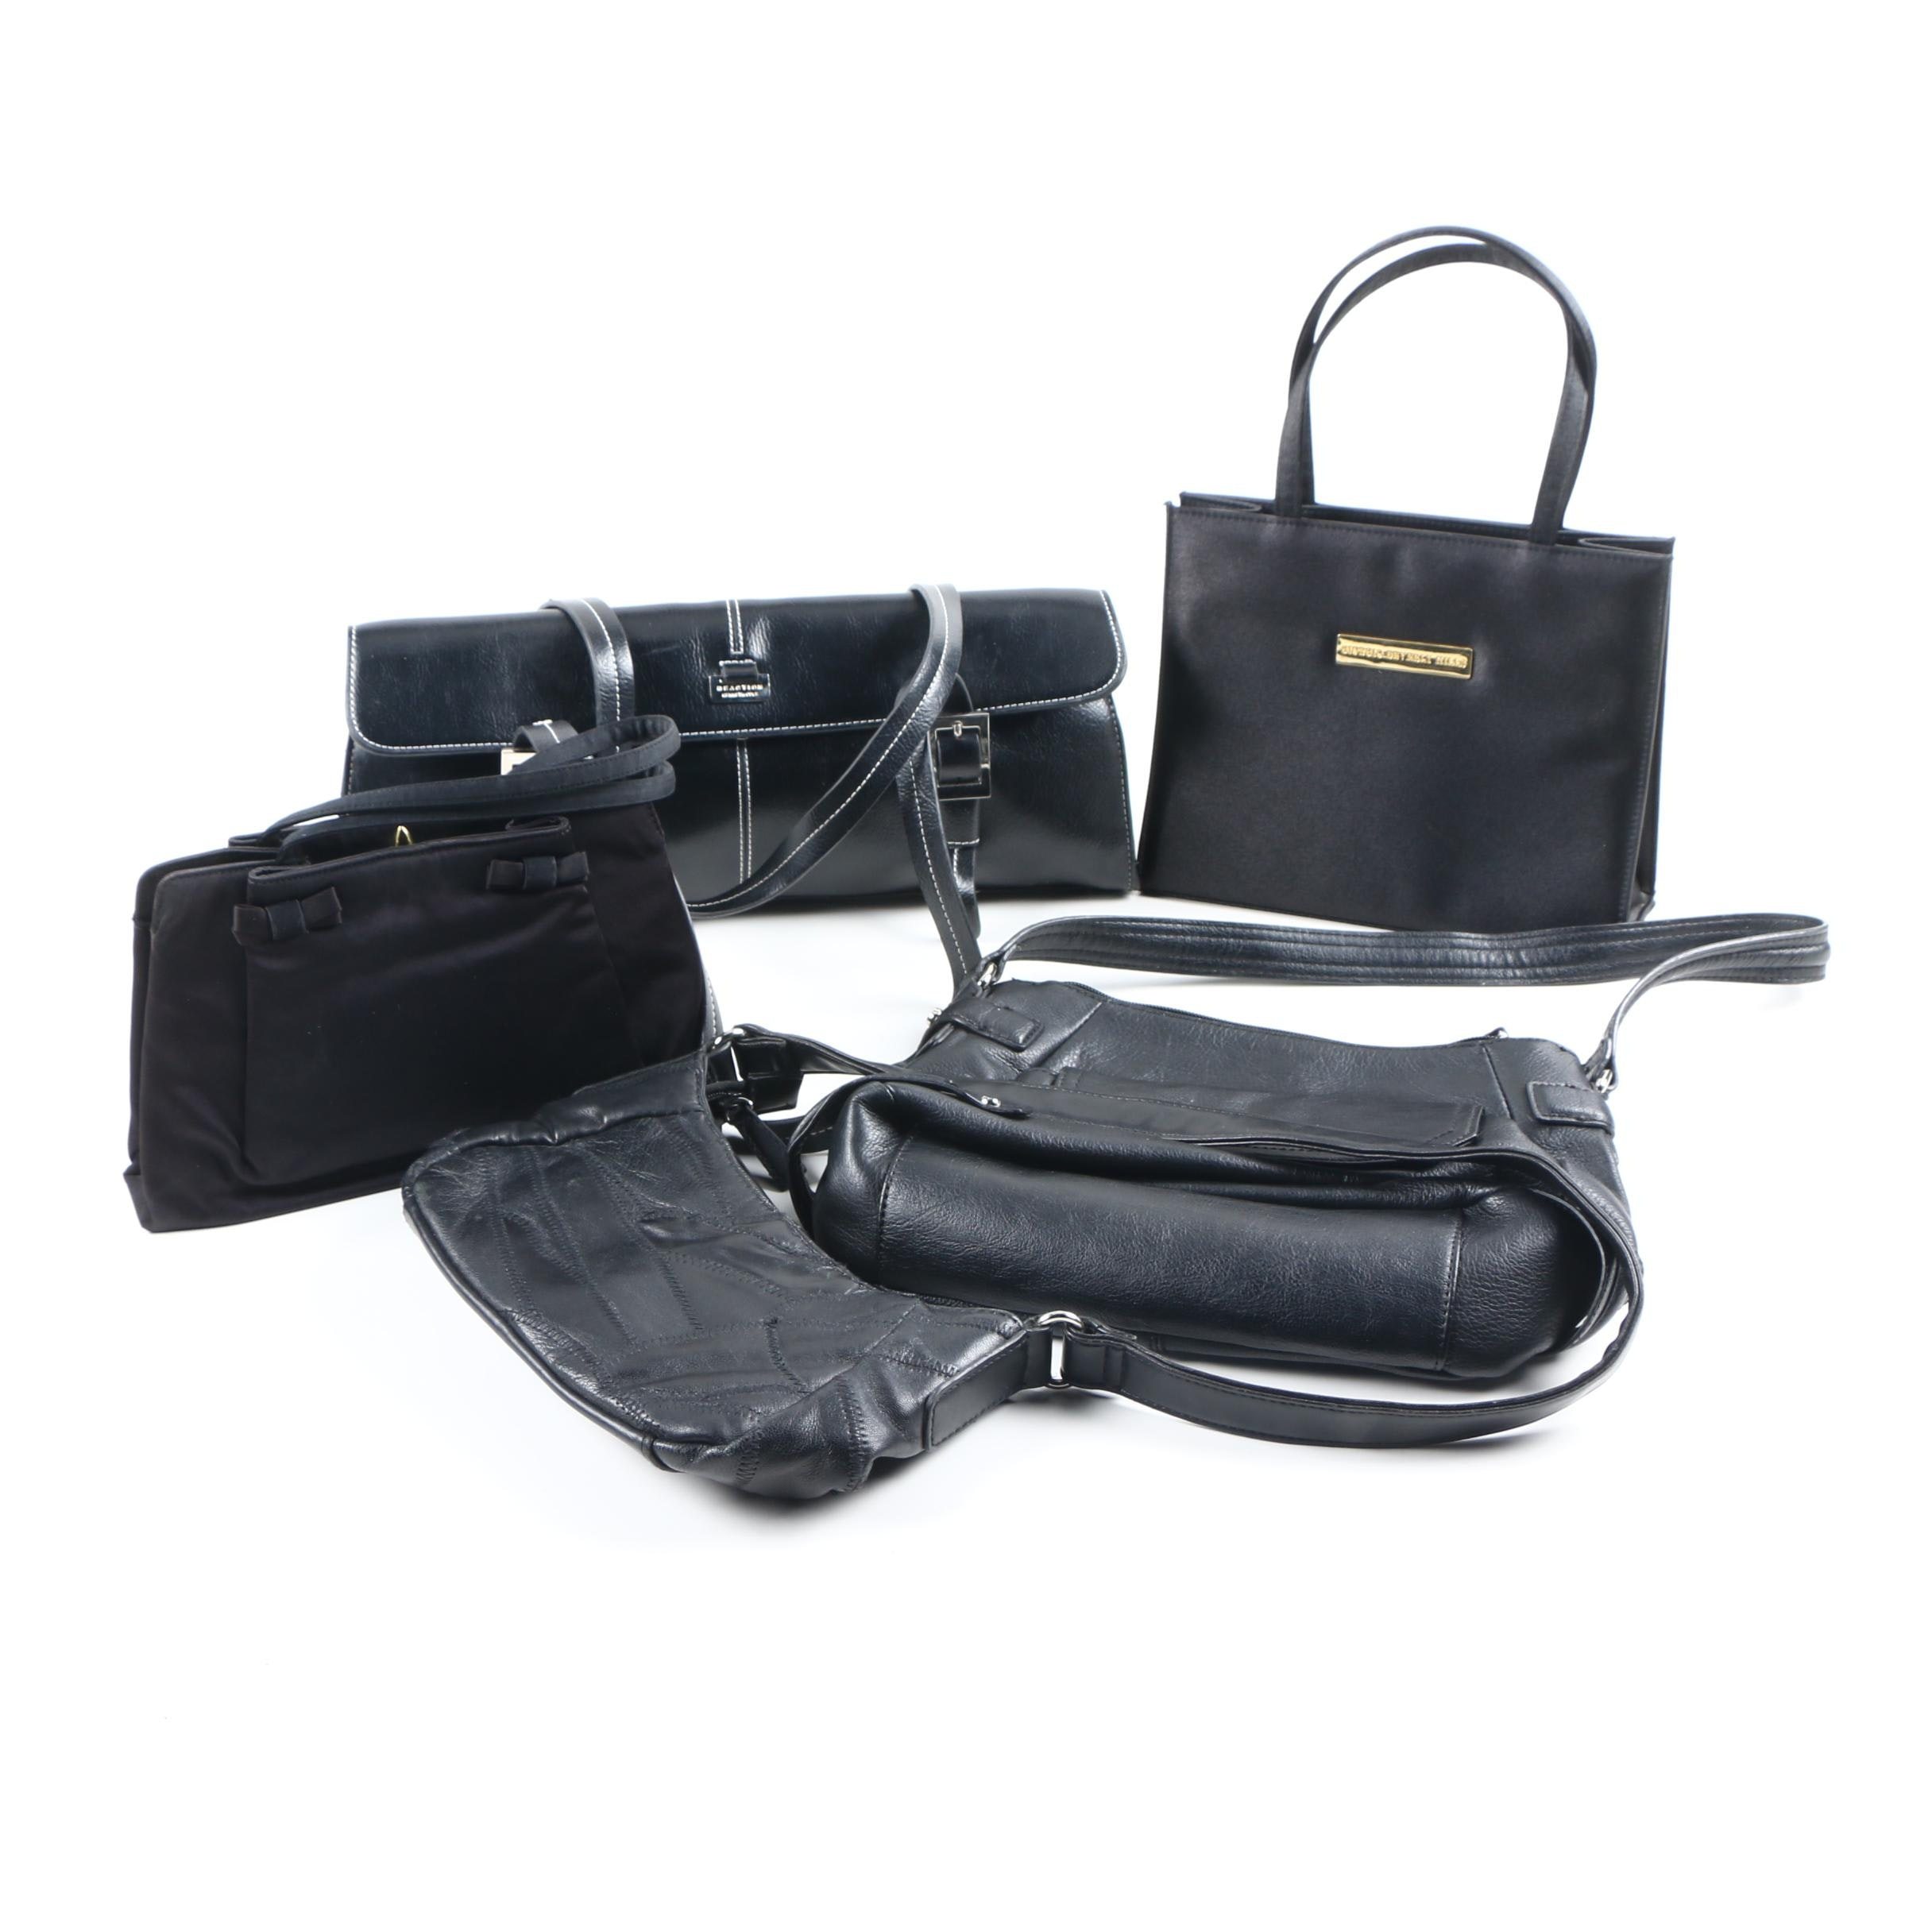 Collection of Black Leather Handbags